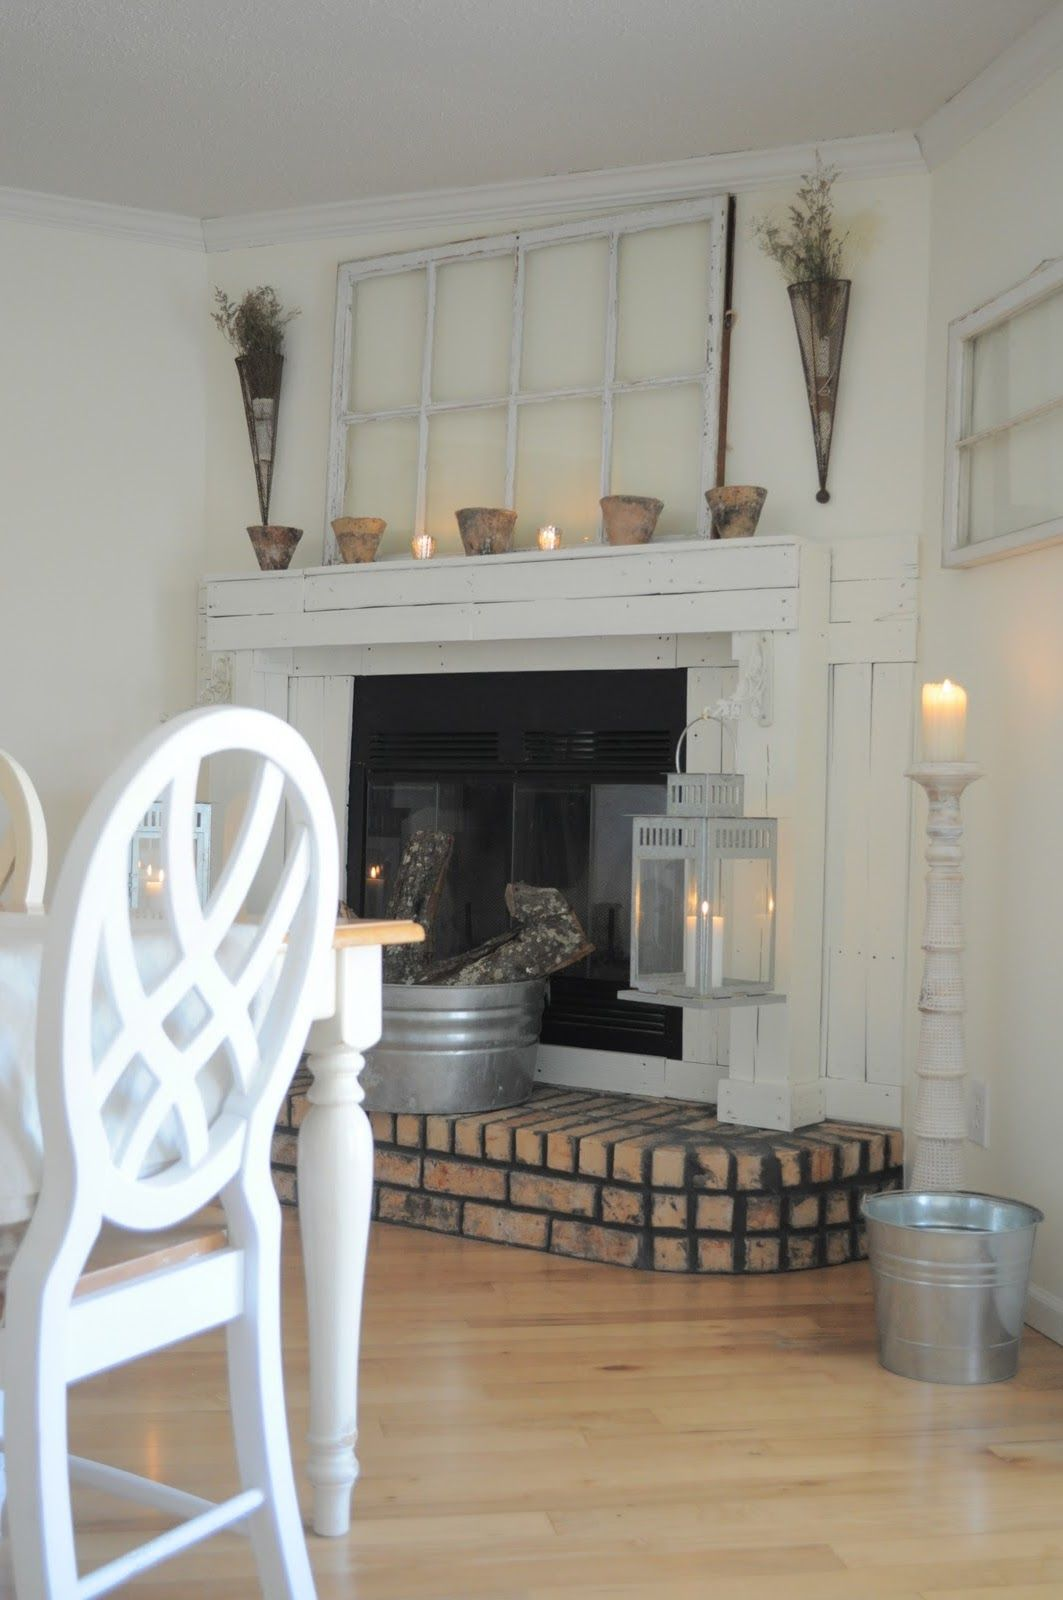 thinking about doing this to my new decorative fireplace for rh pinterest com